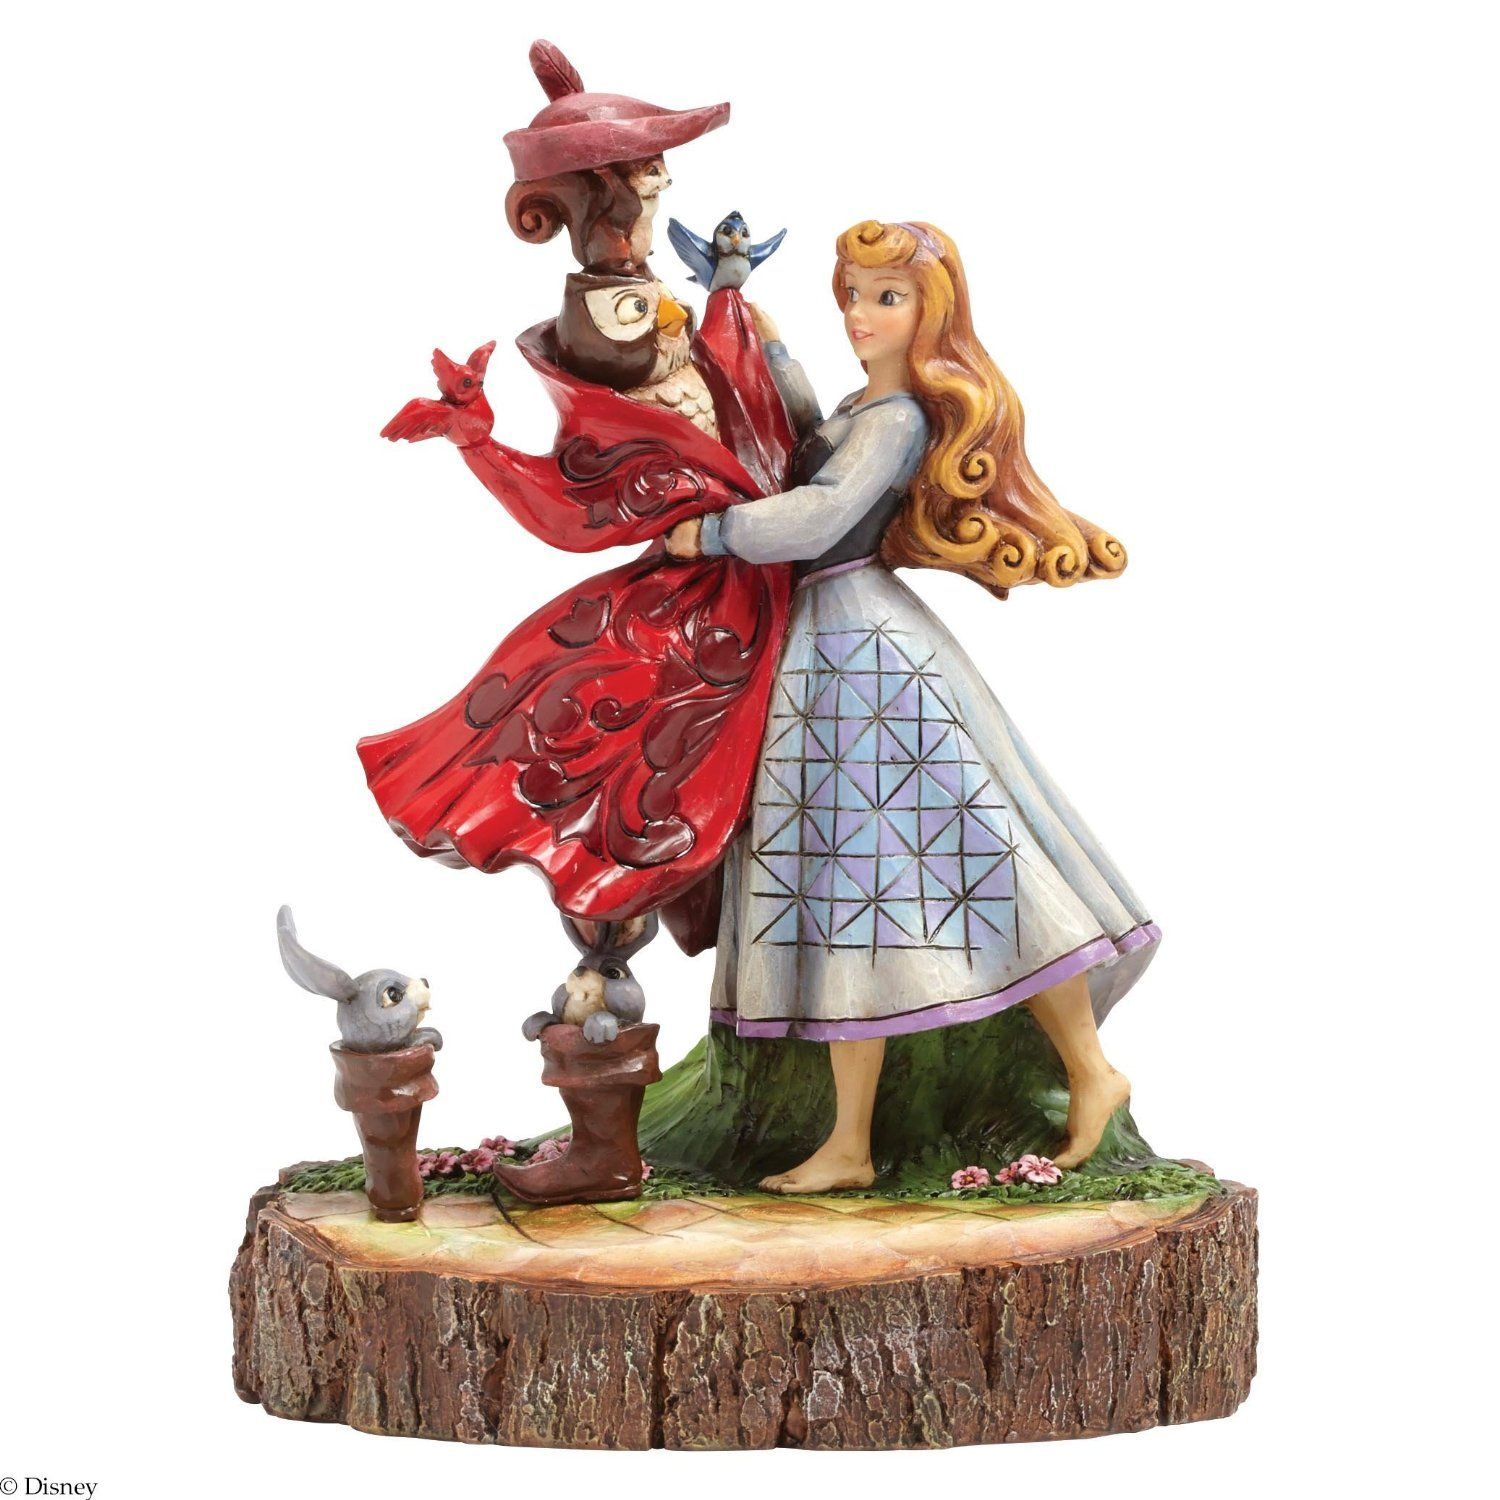 Jim Shore expands his Carved by Heart collection featuring the Briar Rose (Princess Aurora) wishing once upona dream with her woodland friends hoping that one day she will meet her handsome prince.    7.75in H x 4.375in W x 5.75in L $80.00